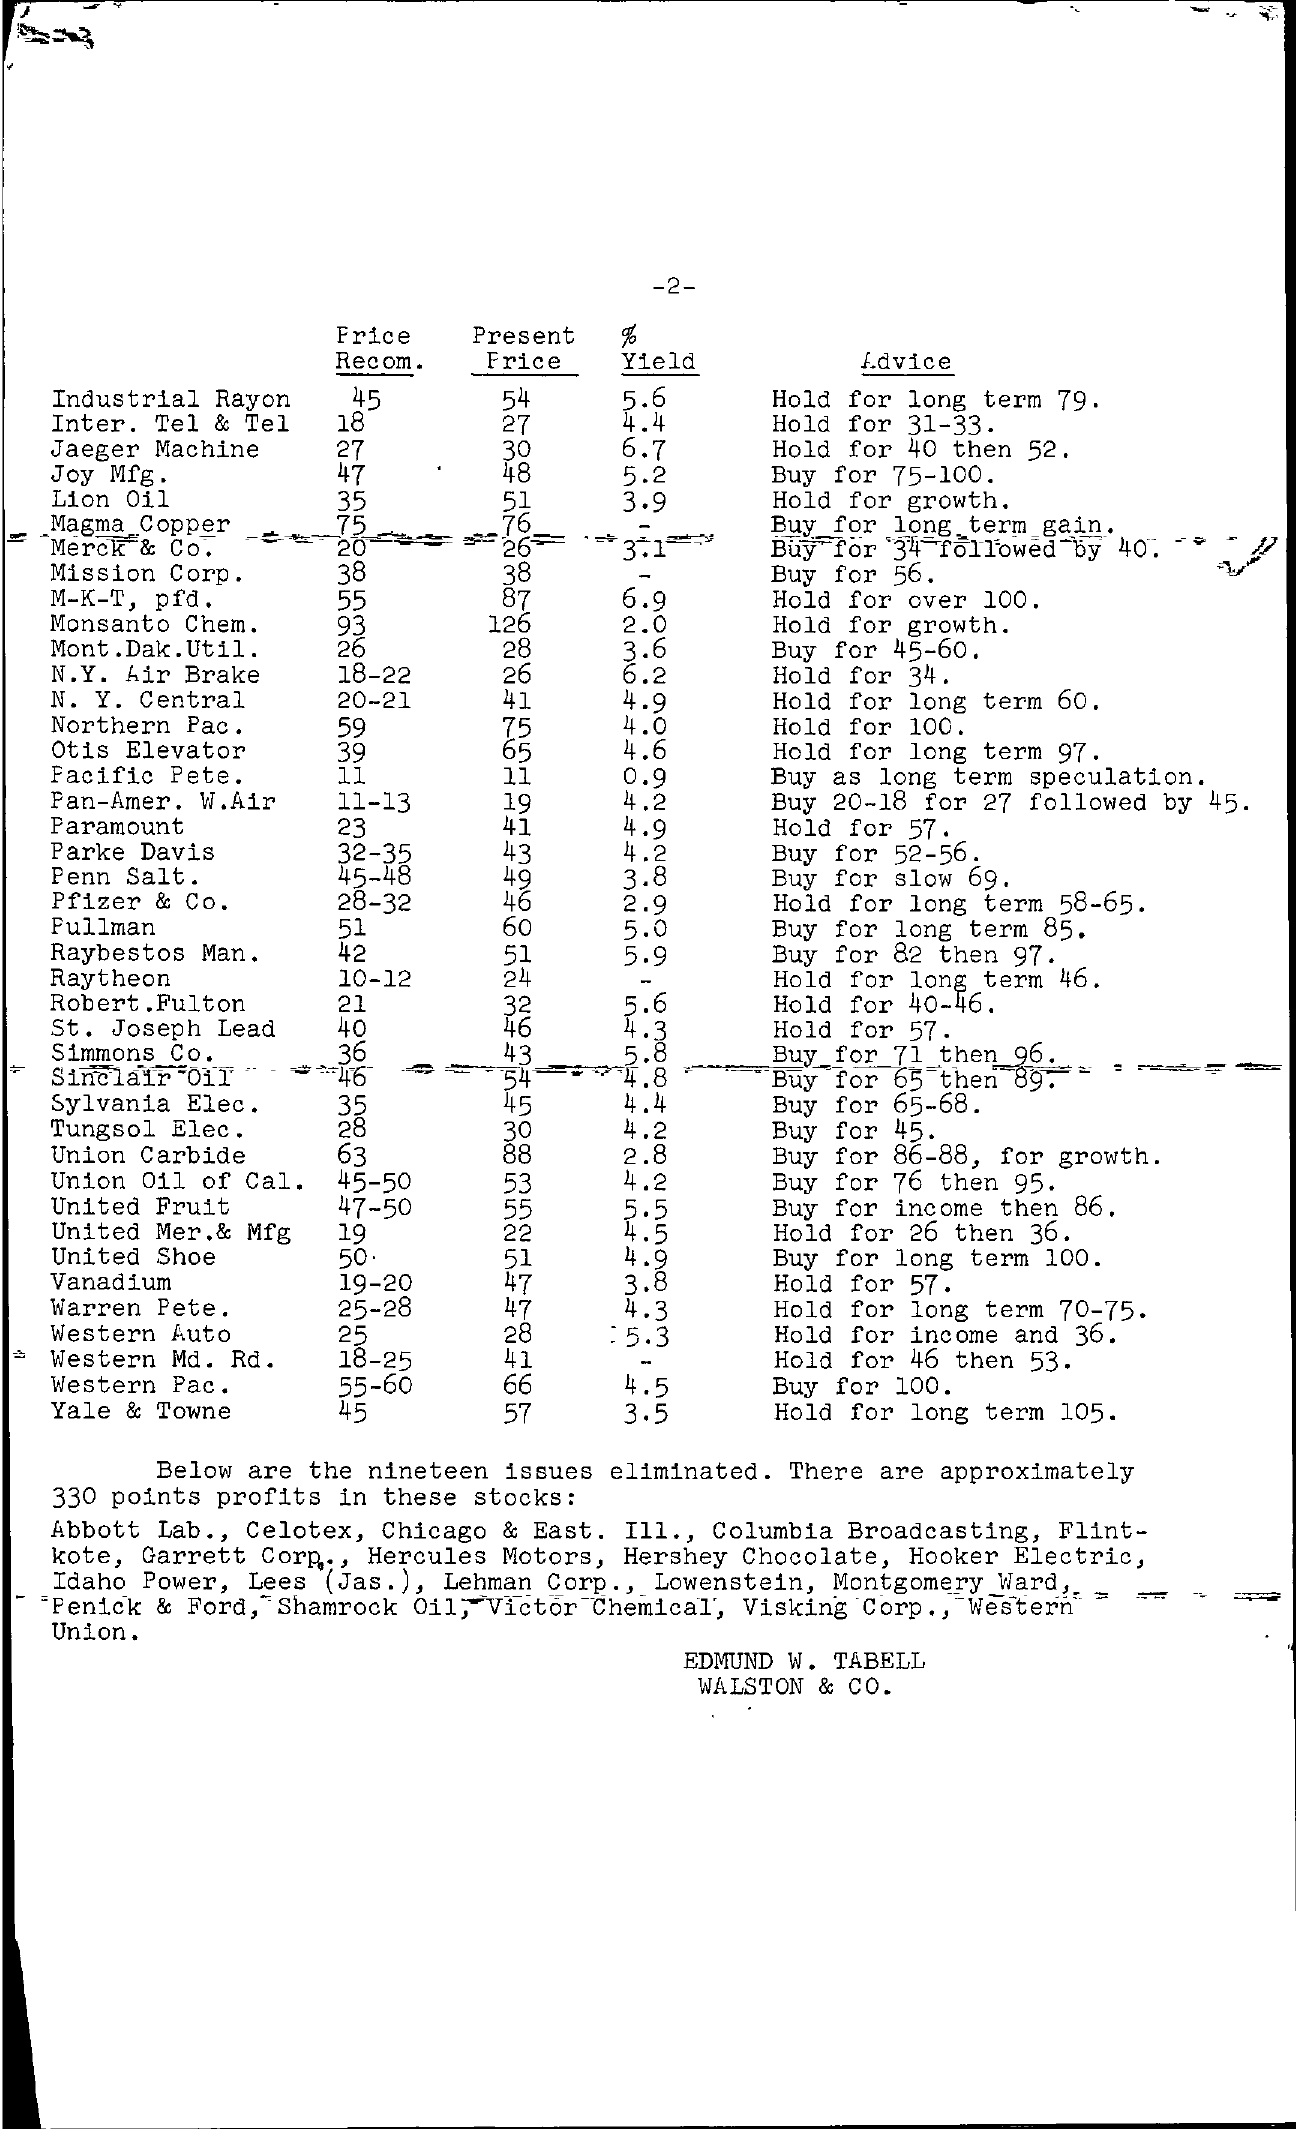 Tabell's Market Letter - April 29, 1955 page 2